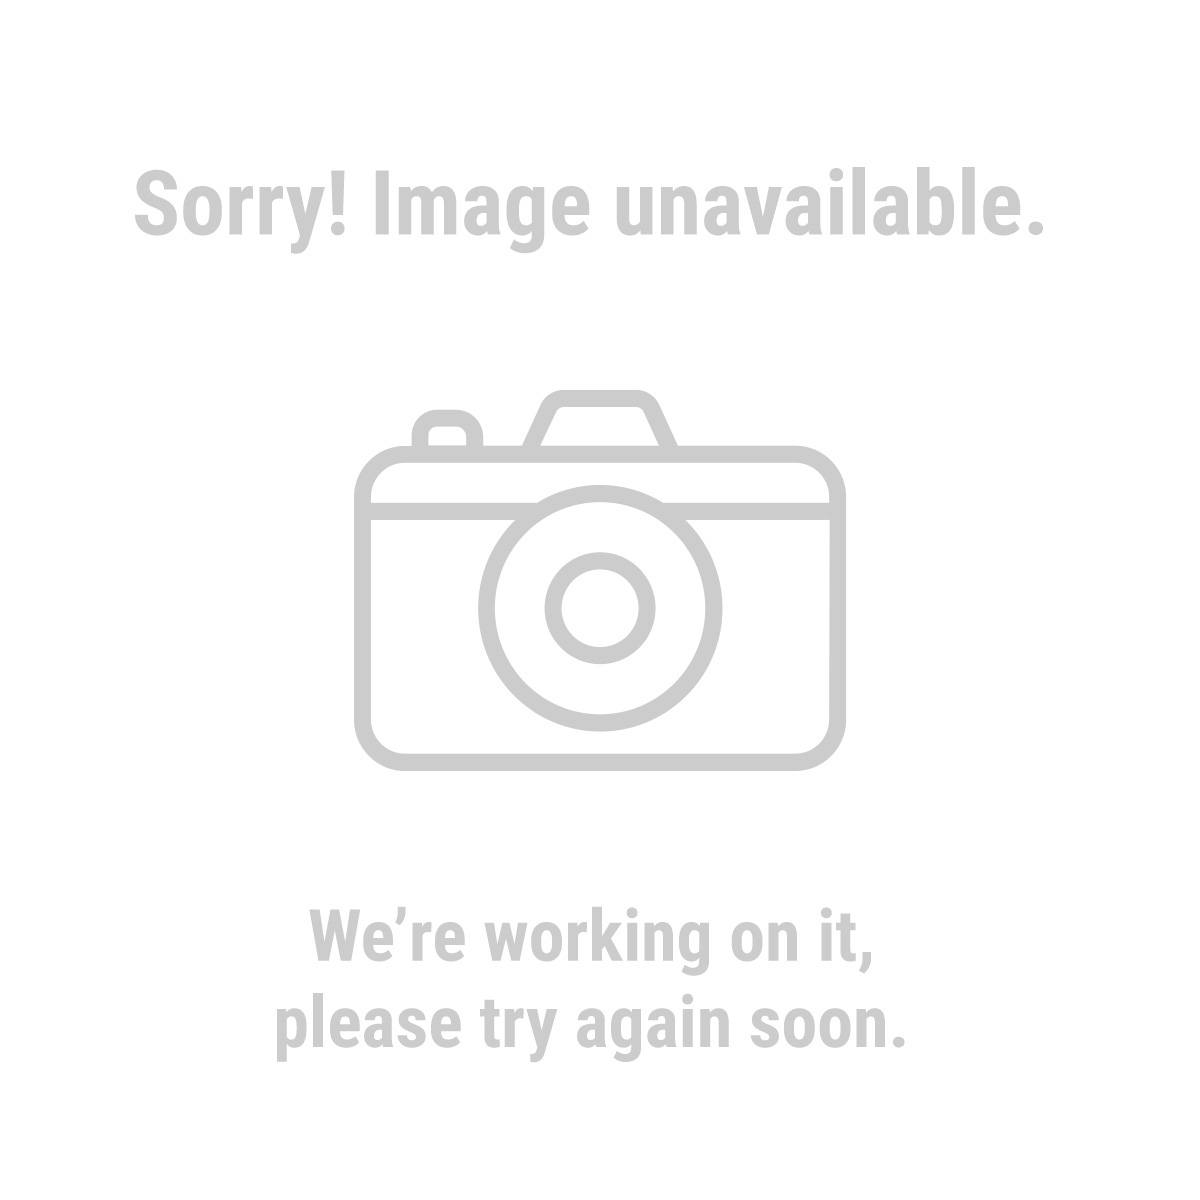 39686 1-1/2 in. Professional Paint Brush